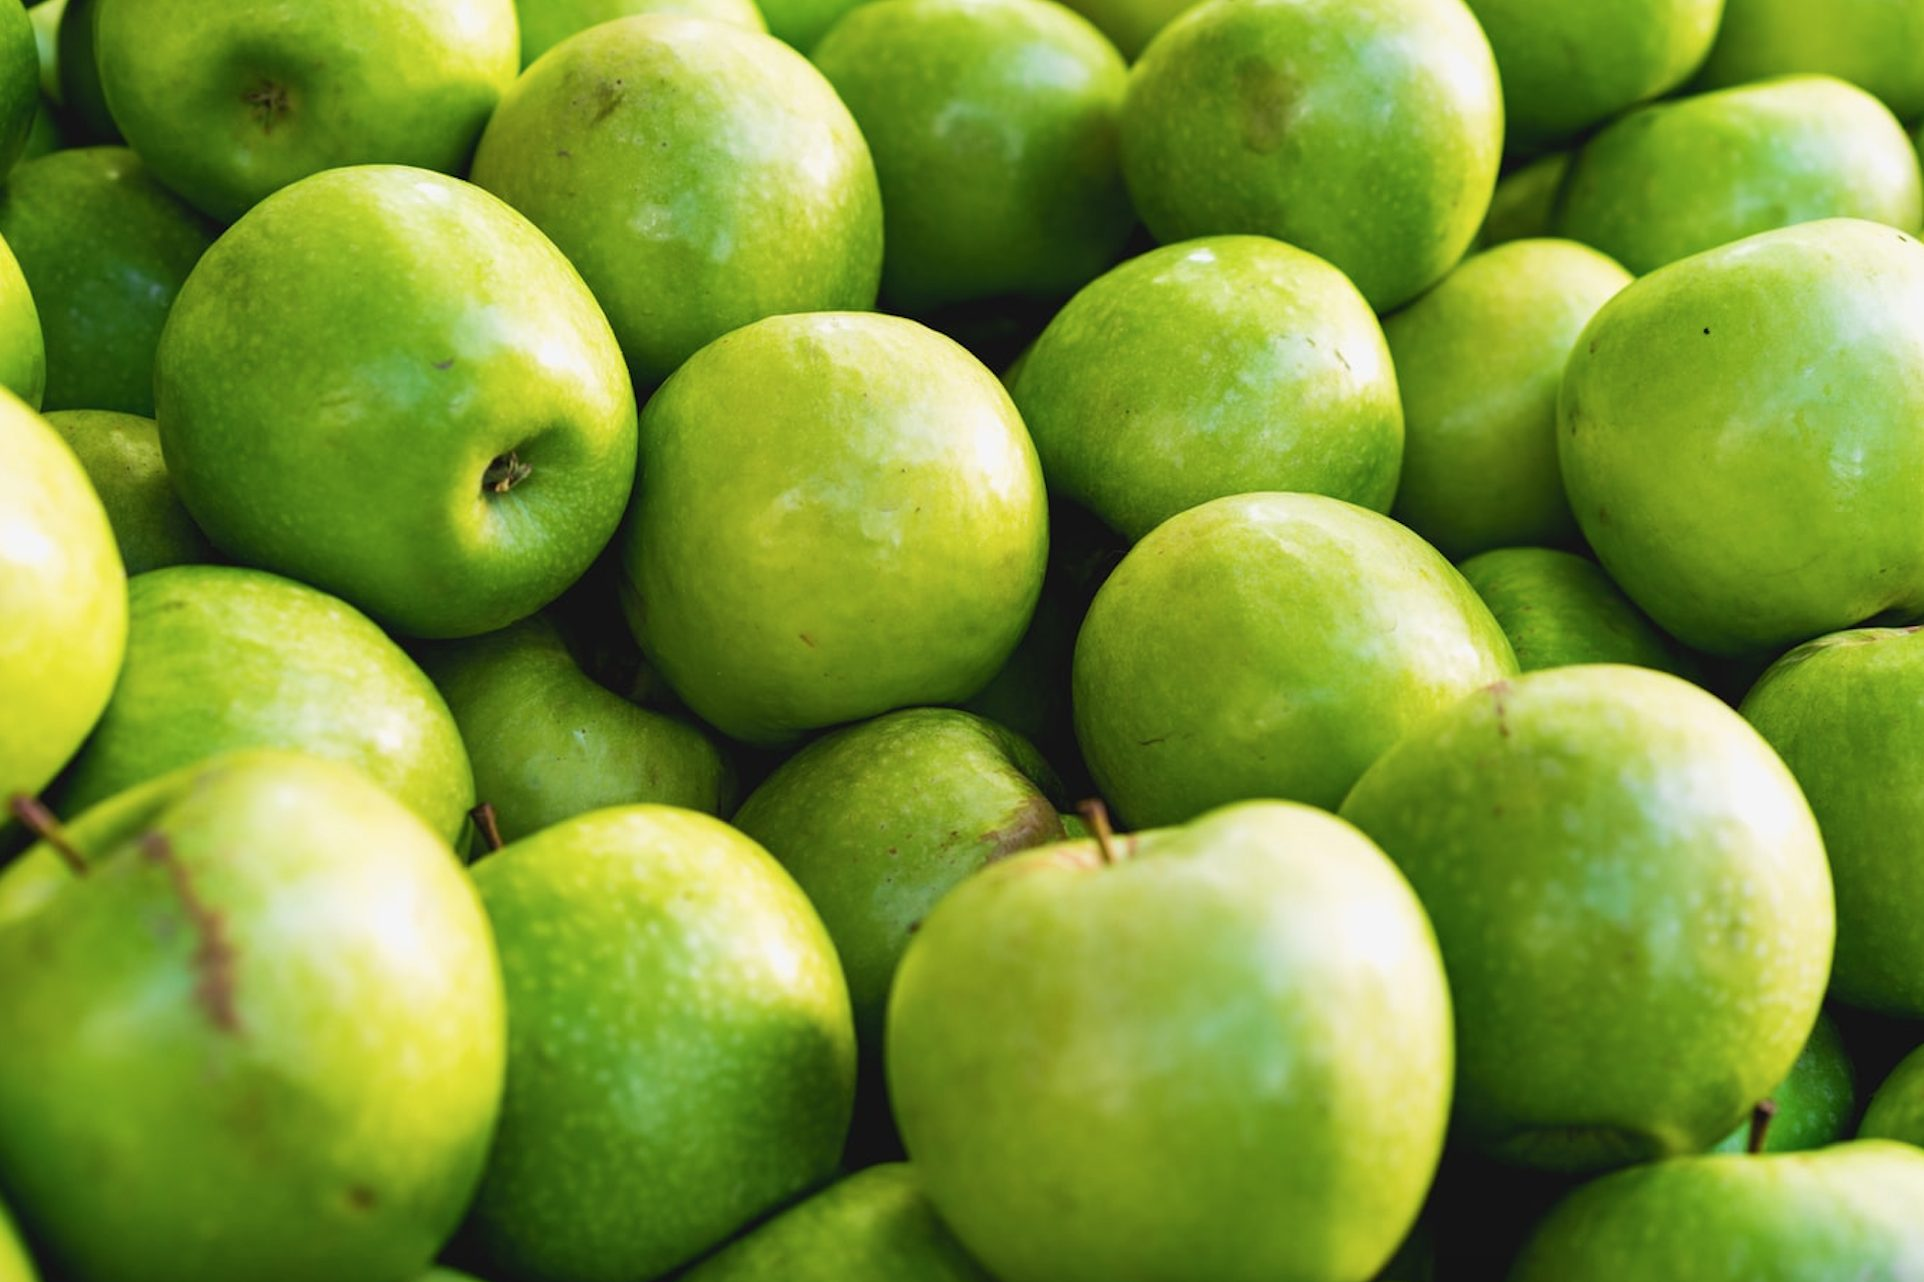 The perfect recipe for your summer farewell party: The Boozy Granny Smith